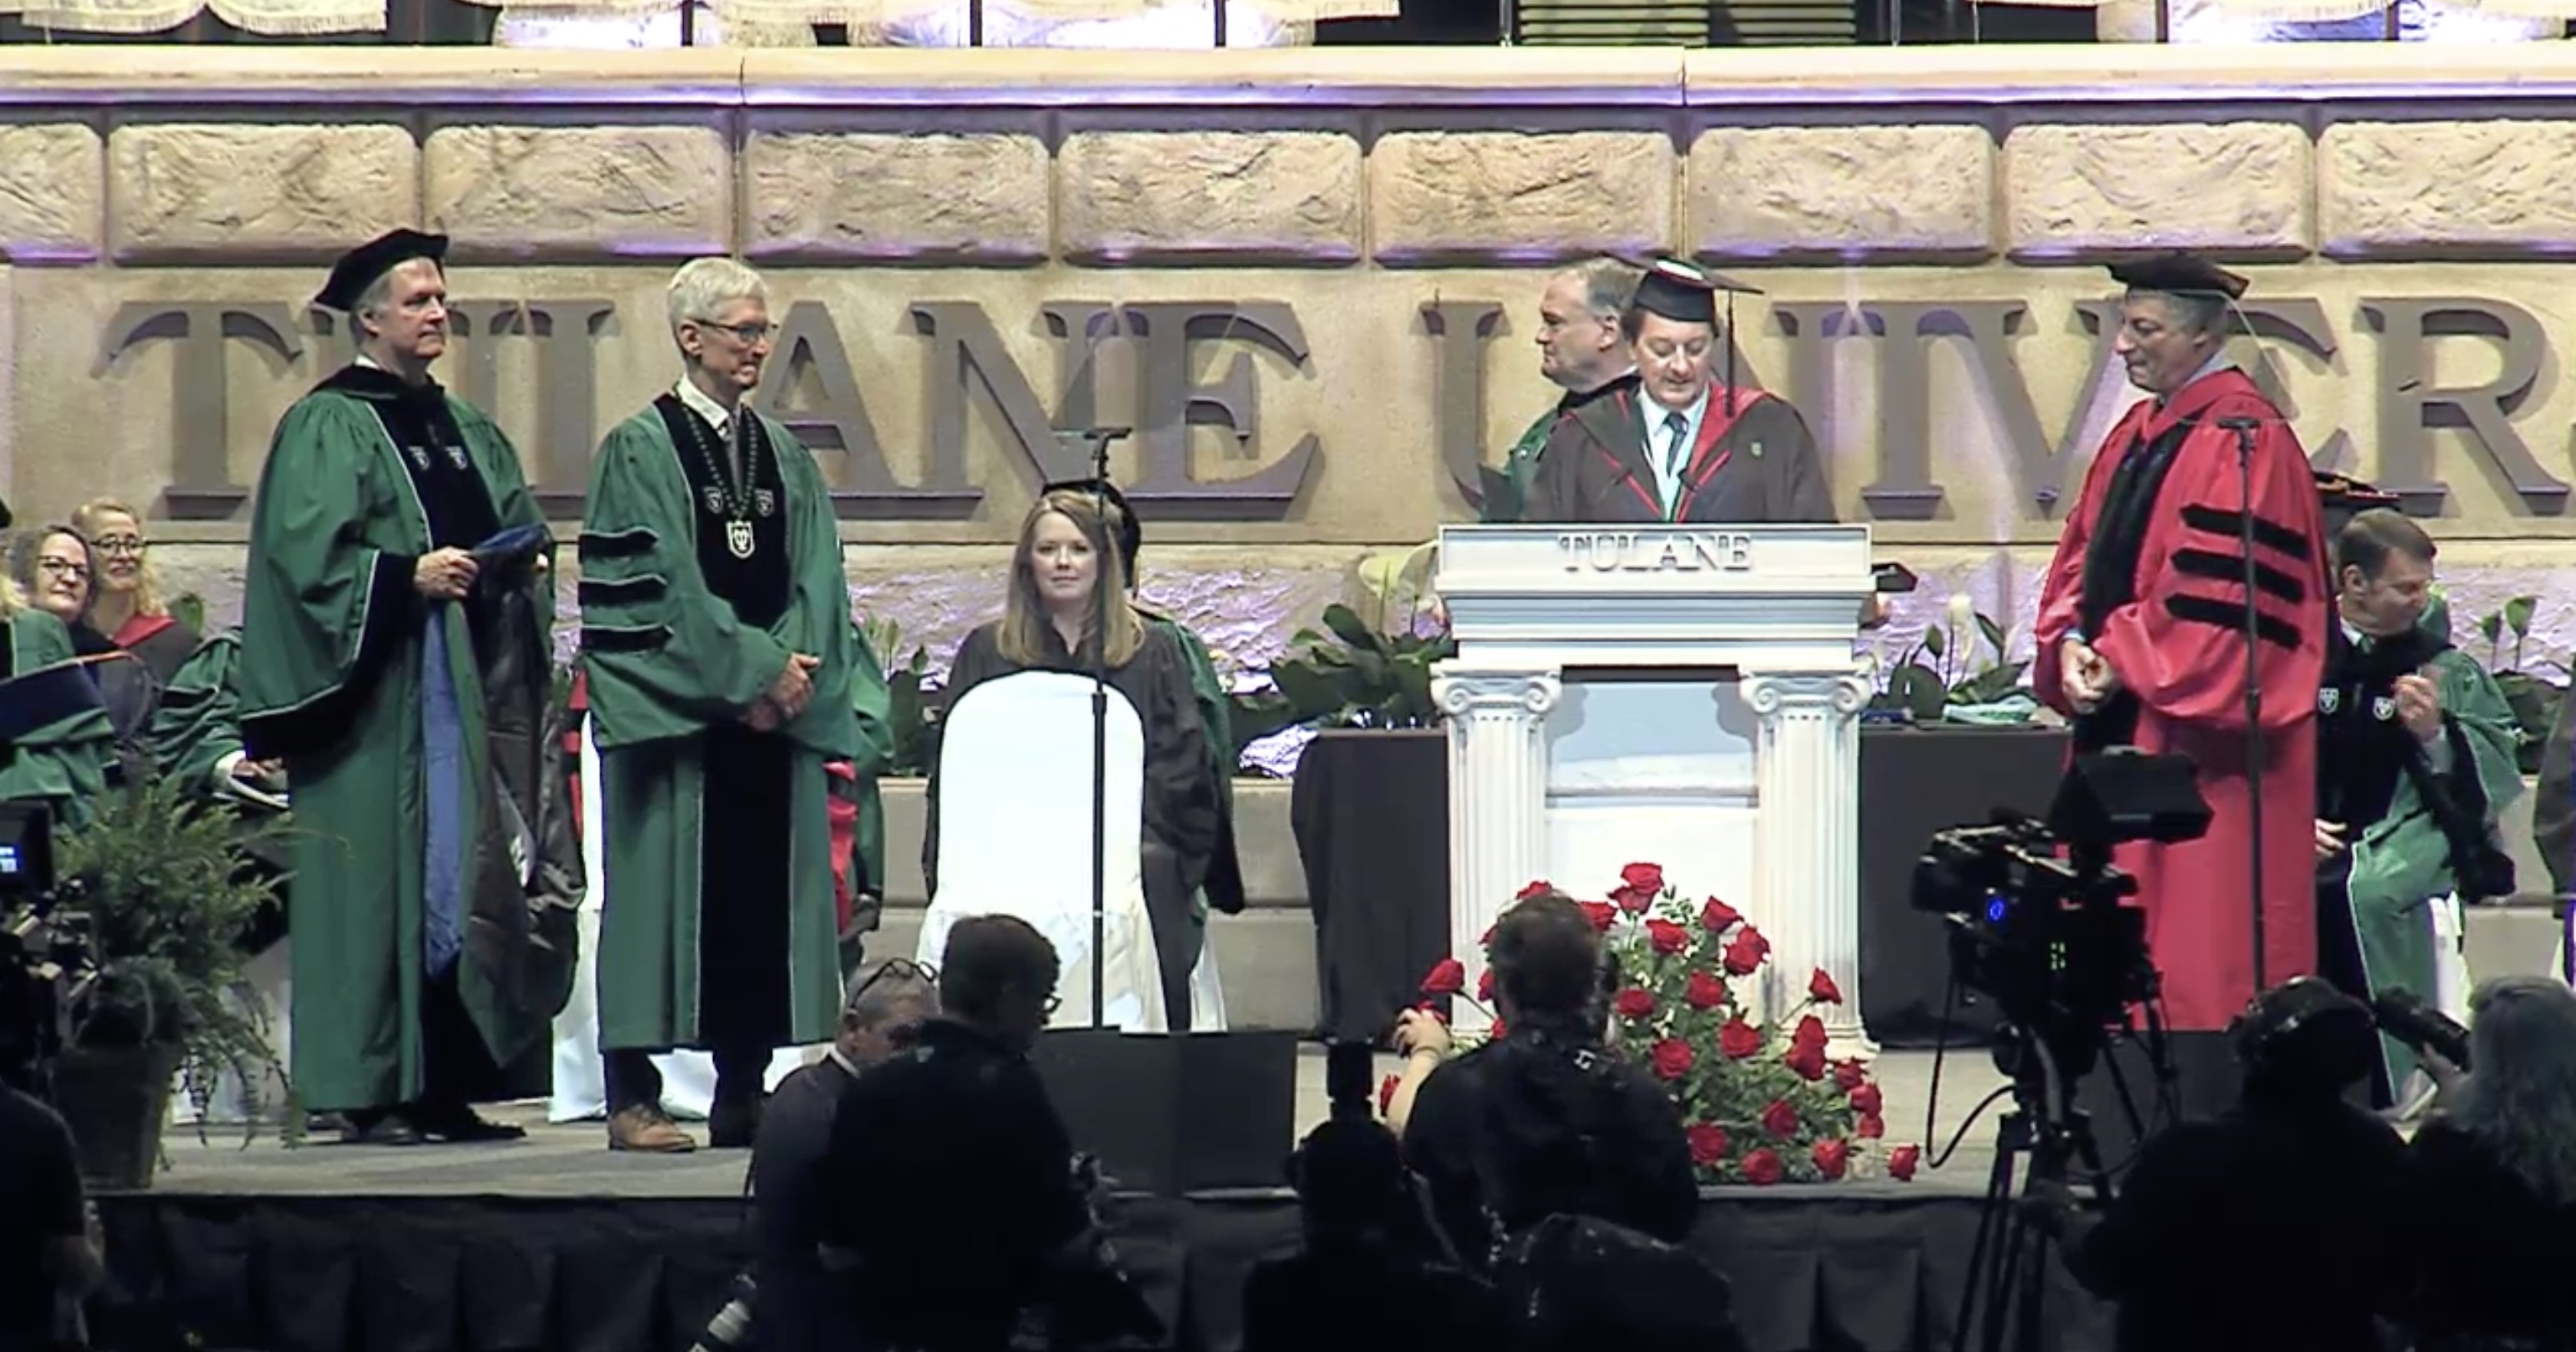 Tim Cook delivers Tulane commencement address, talks climate change and his journey to Apple